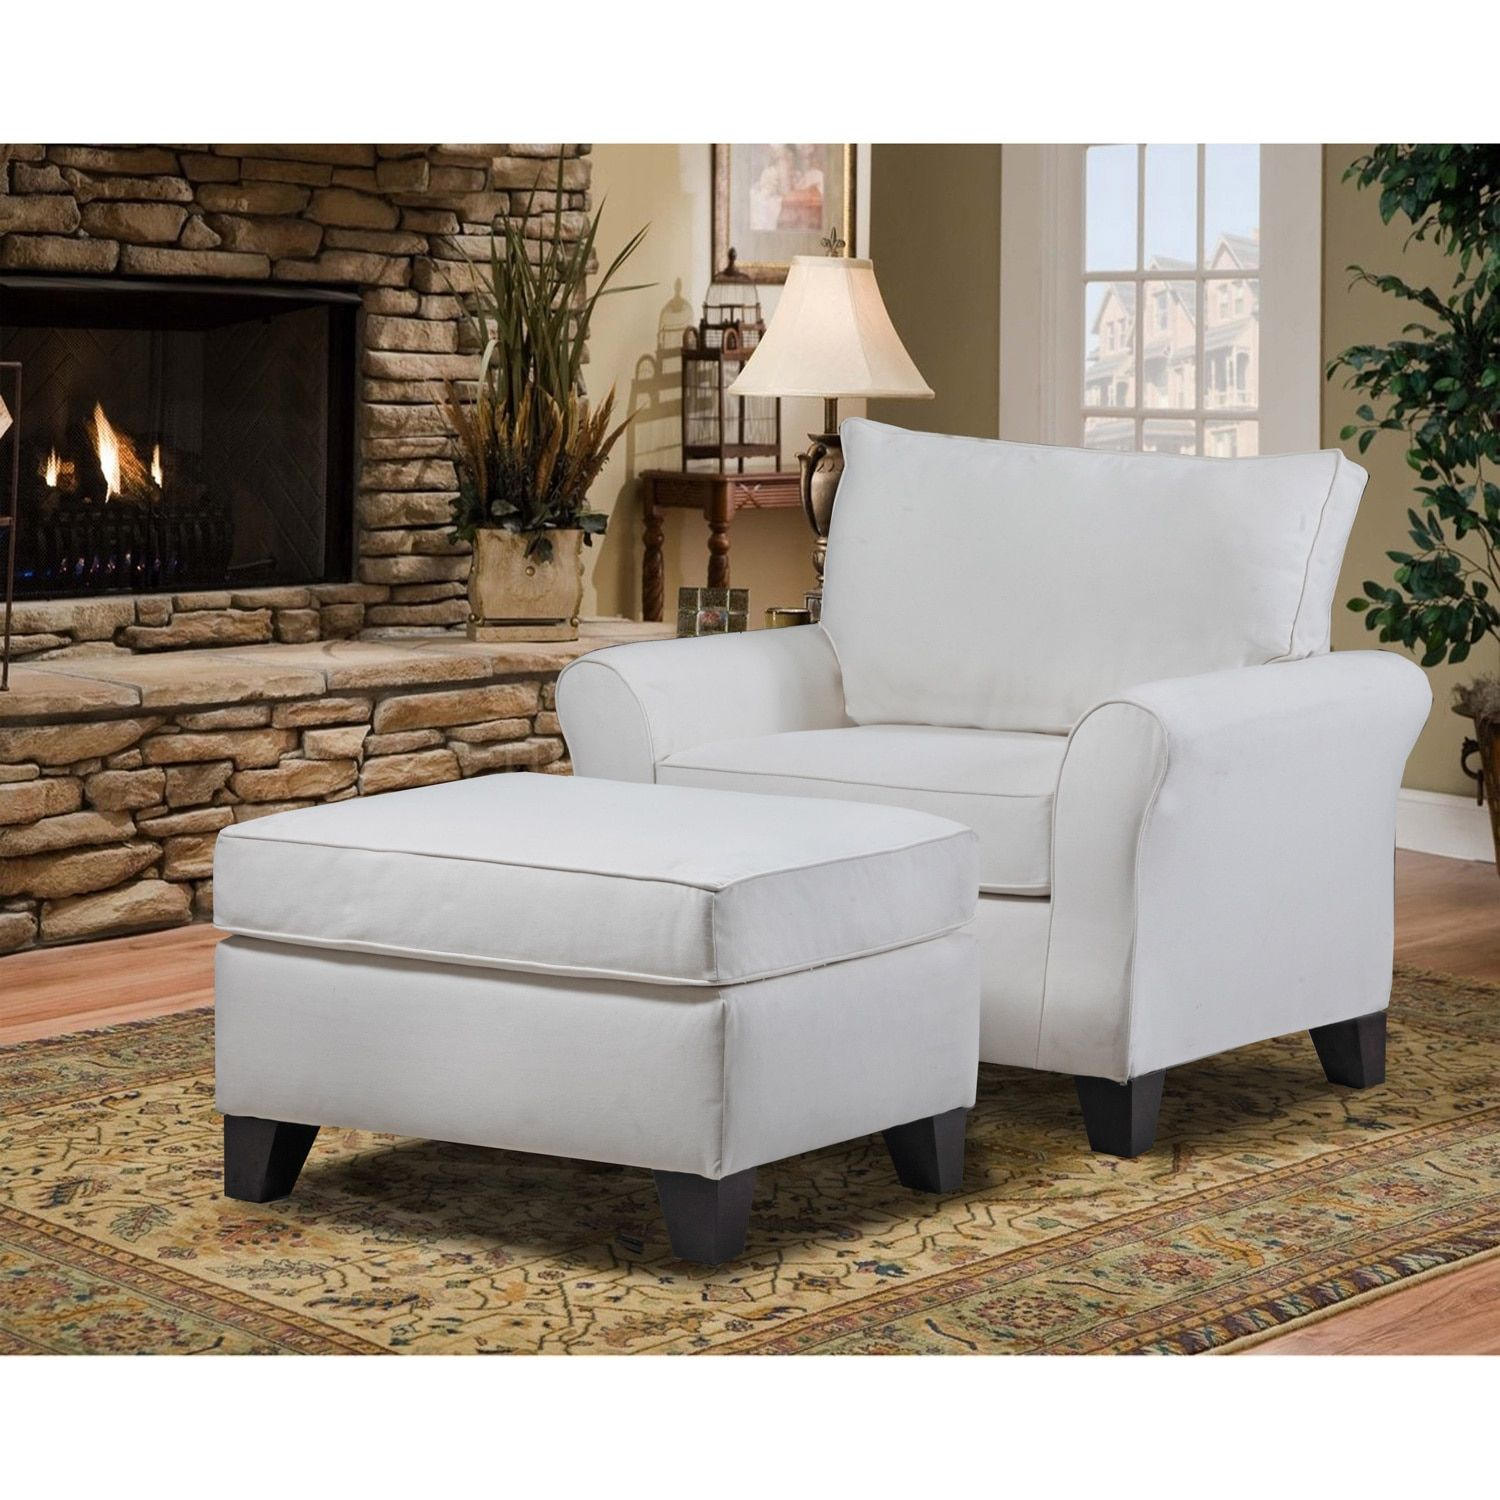 Living Room Chairs: Create an inviting atmosphere with new living ...